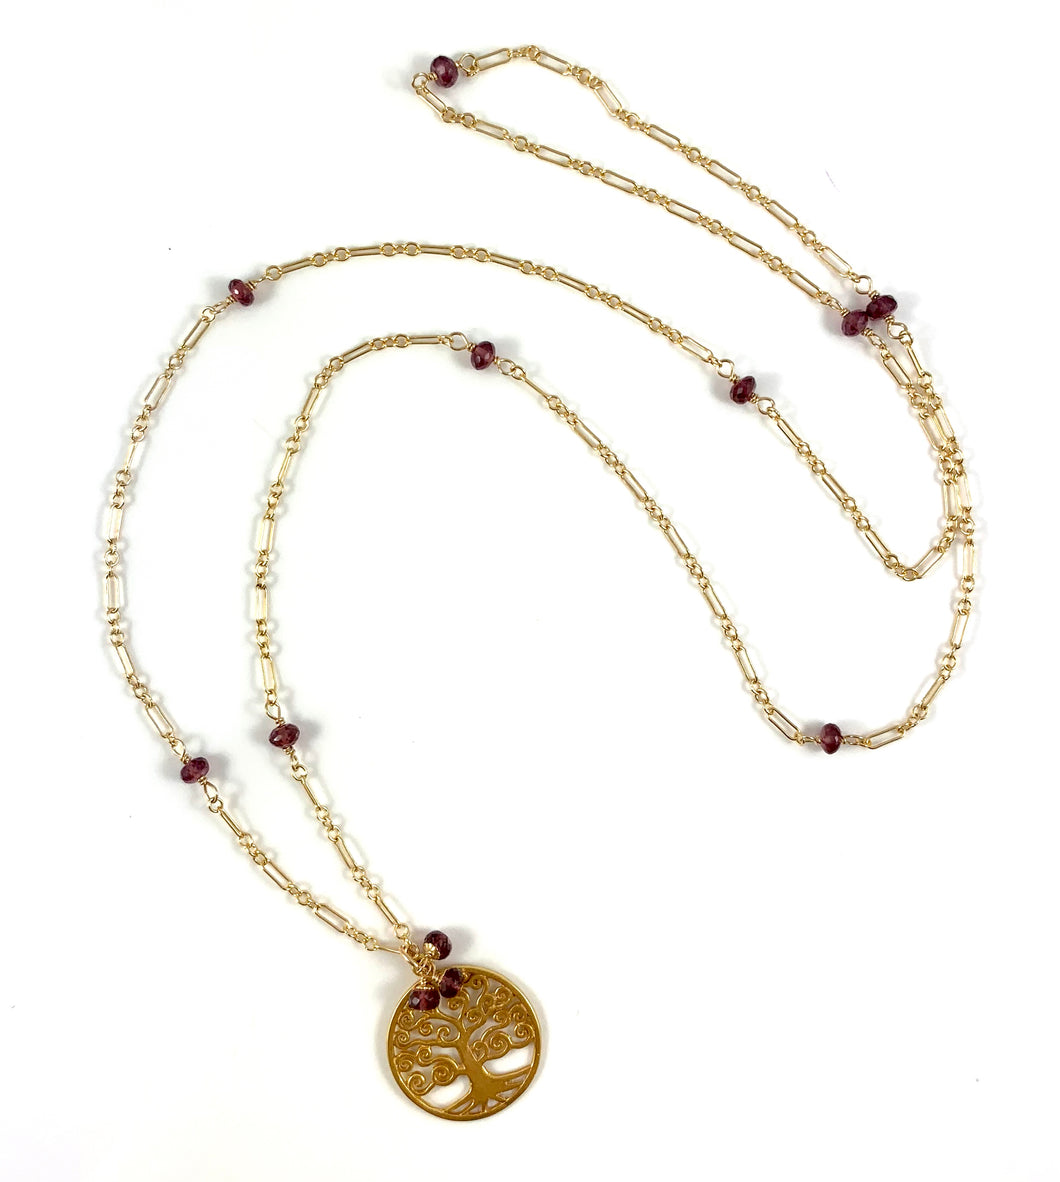 Capricorn Birthstone Handmade Garnet Delicate Gold Chain Tree of Life Pendant Necklace 28